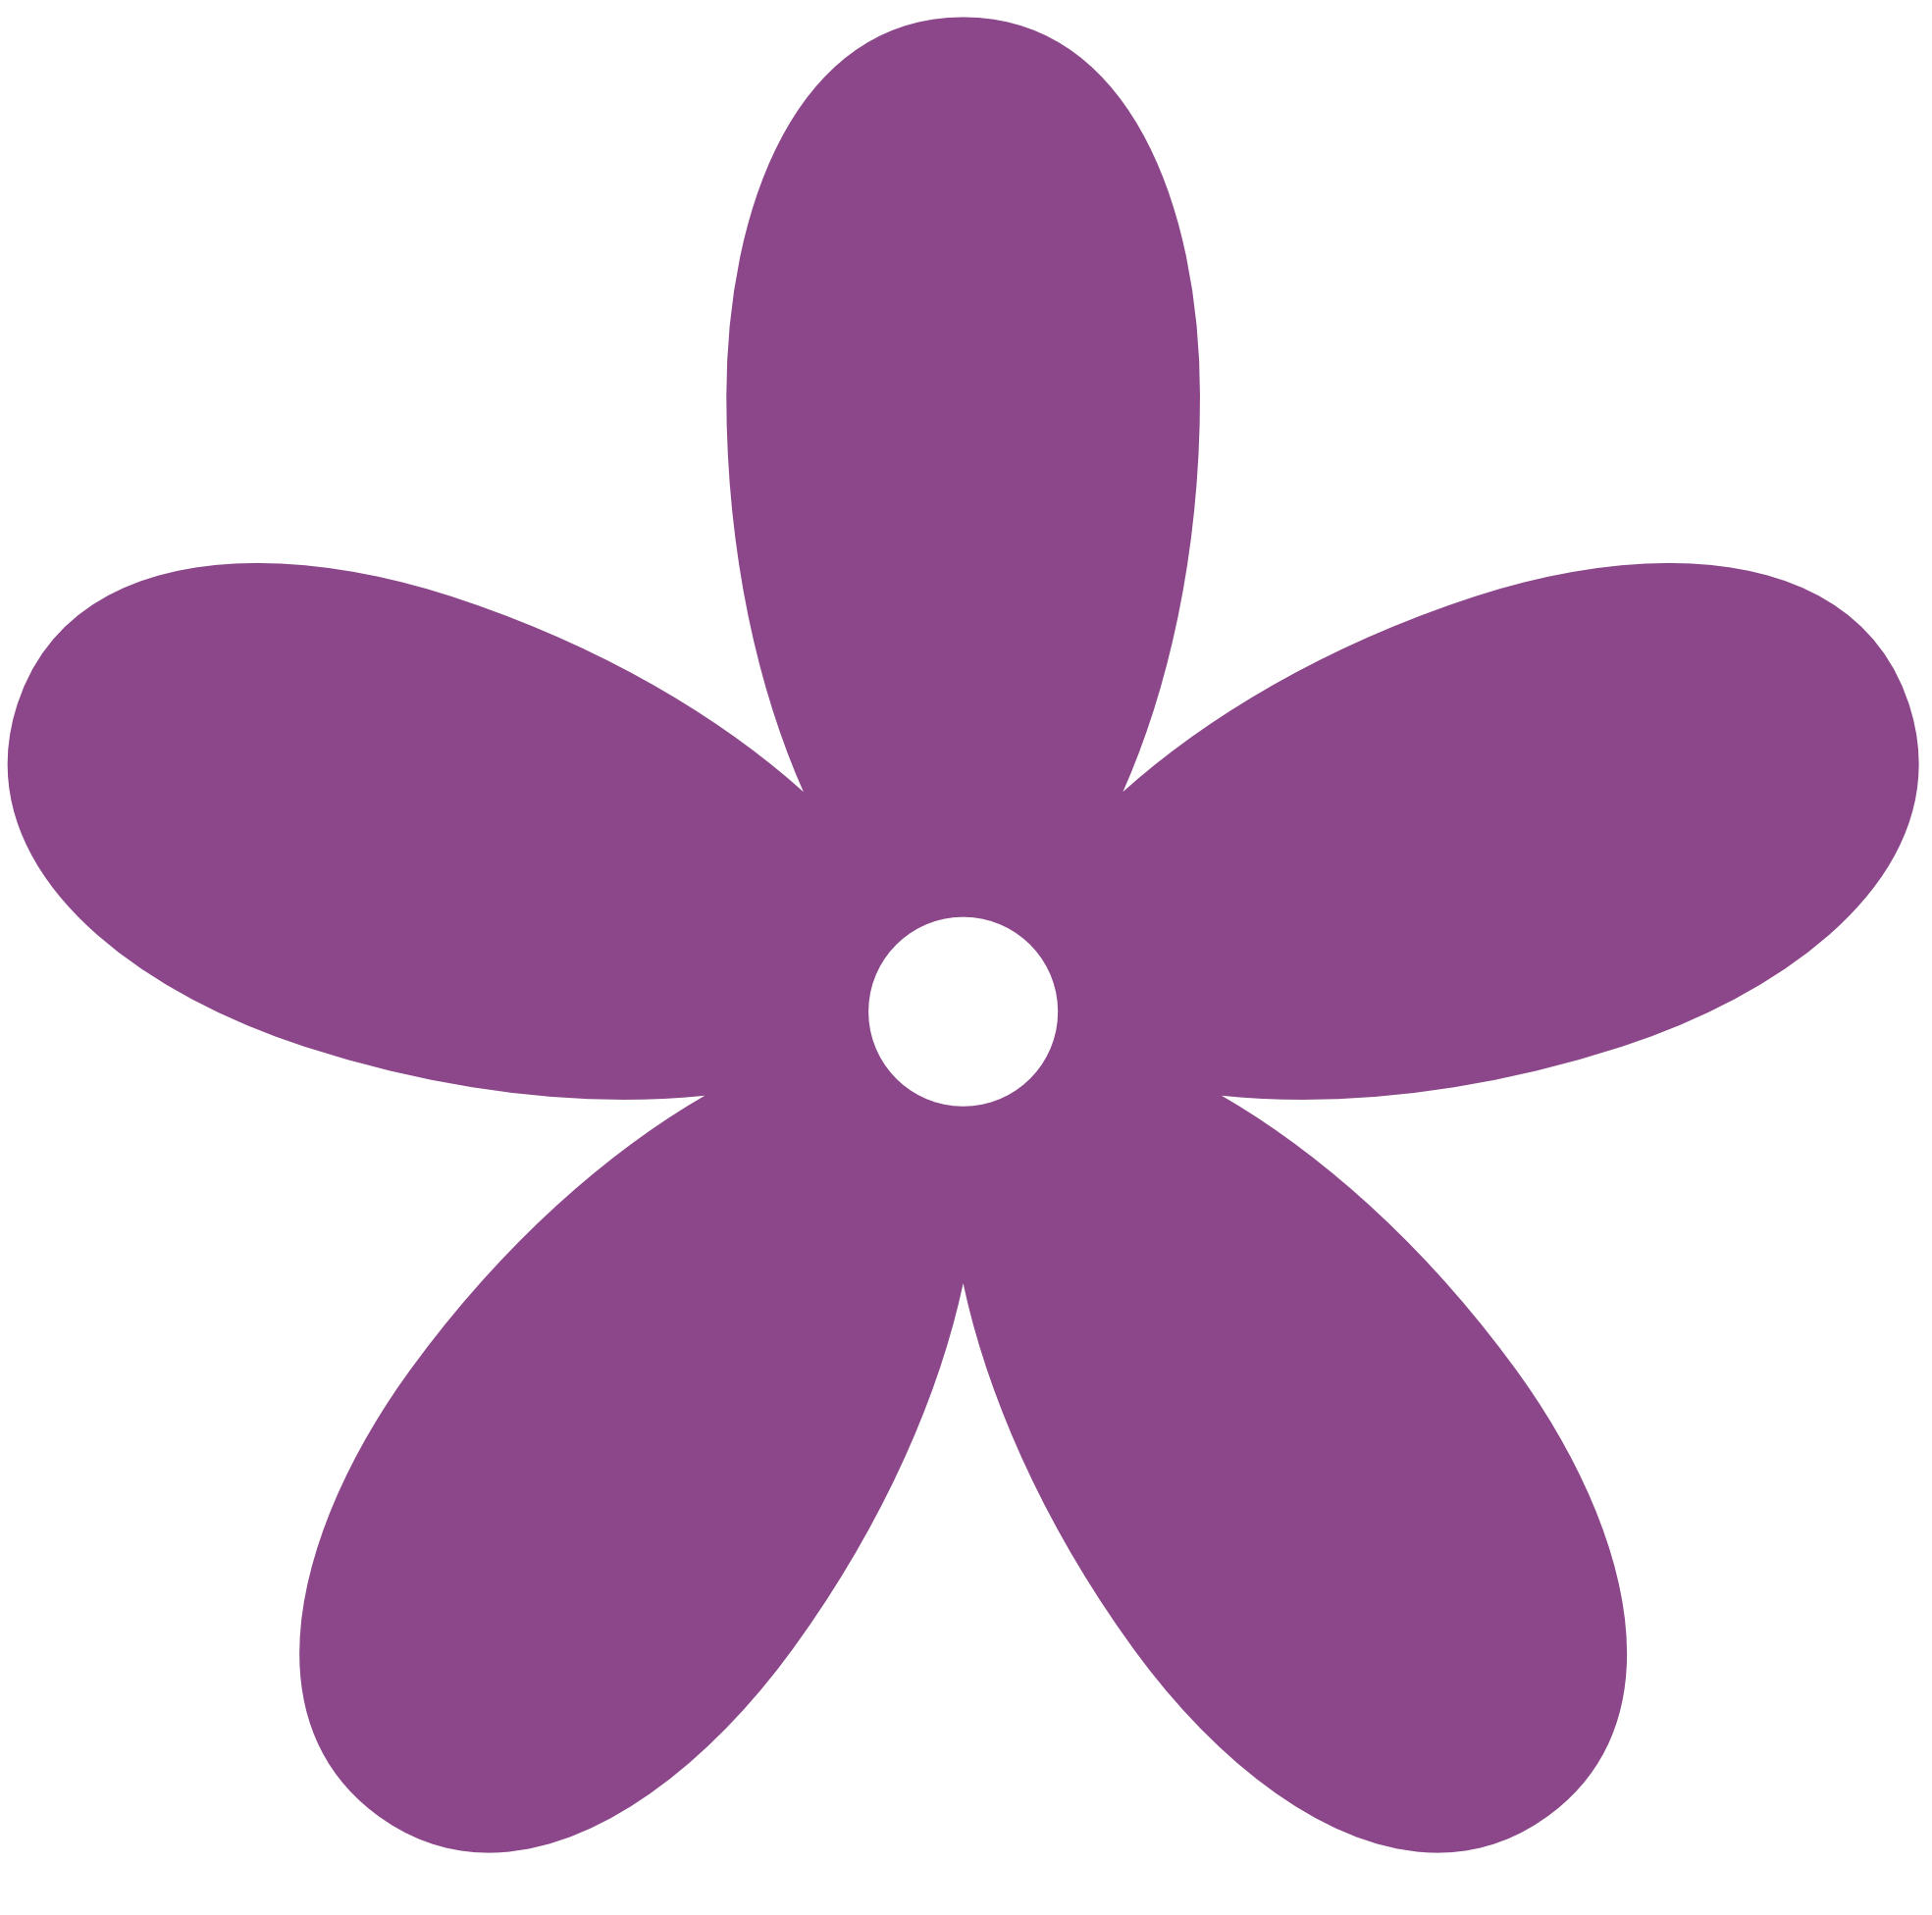 Retro group vector png. Flower clipart hippy